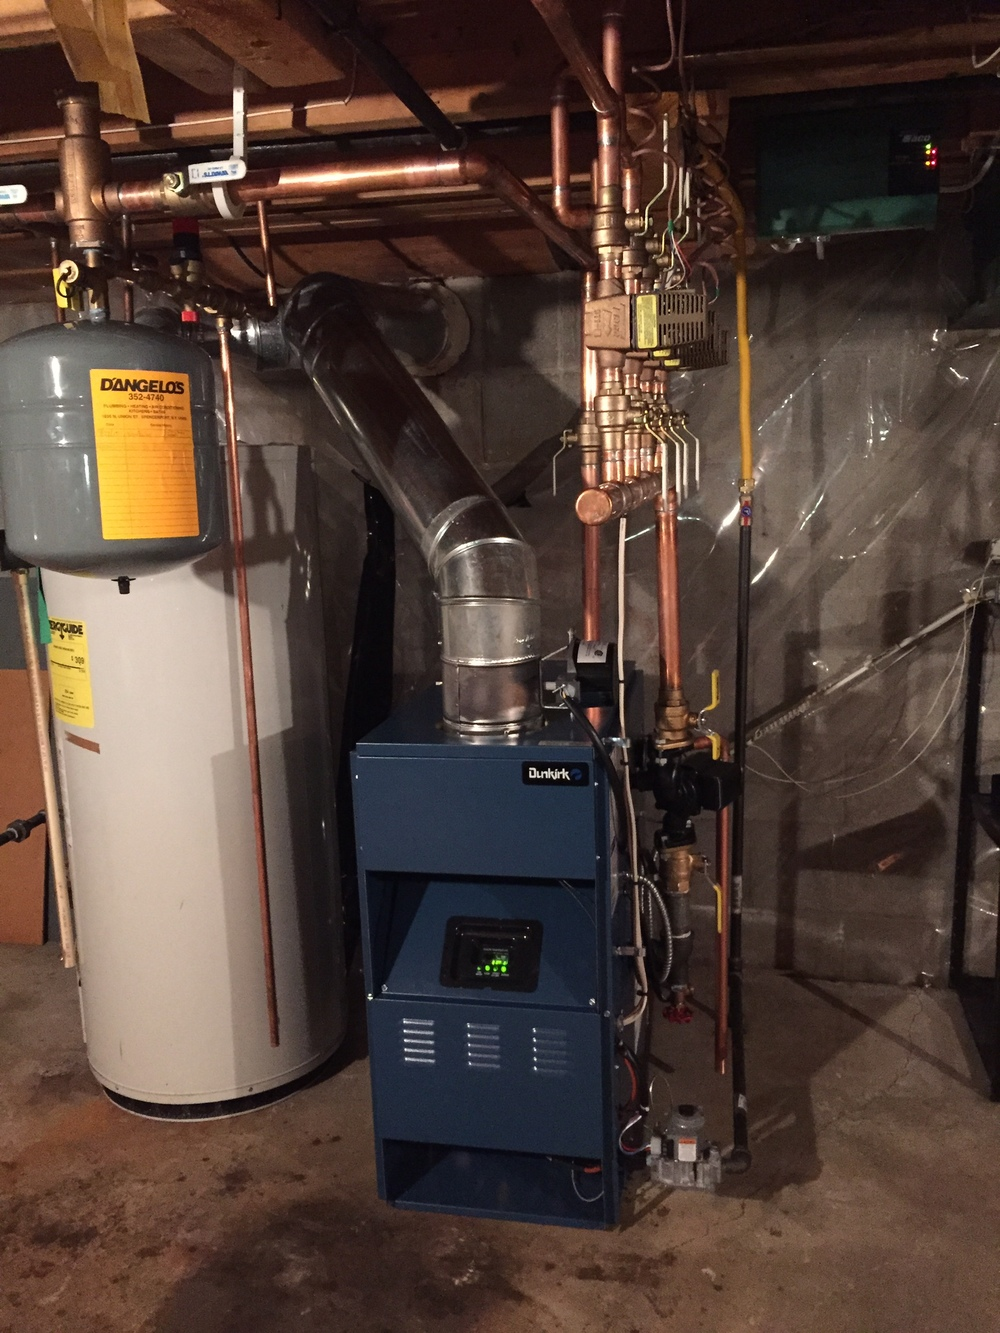 Dunkirk hot water boiler install in Rochester, NY